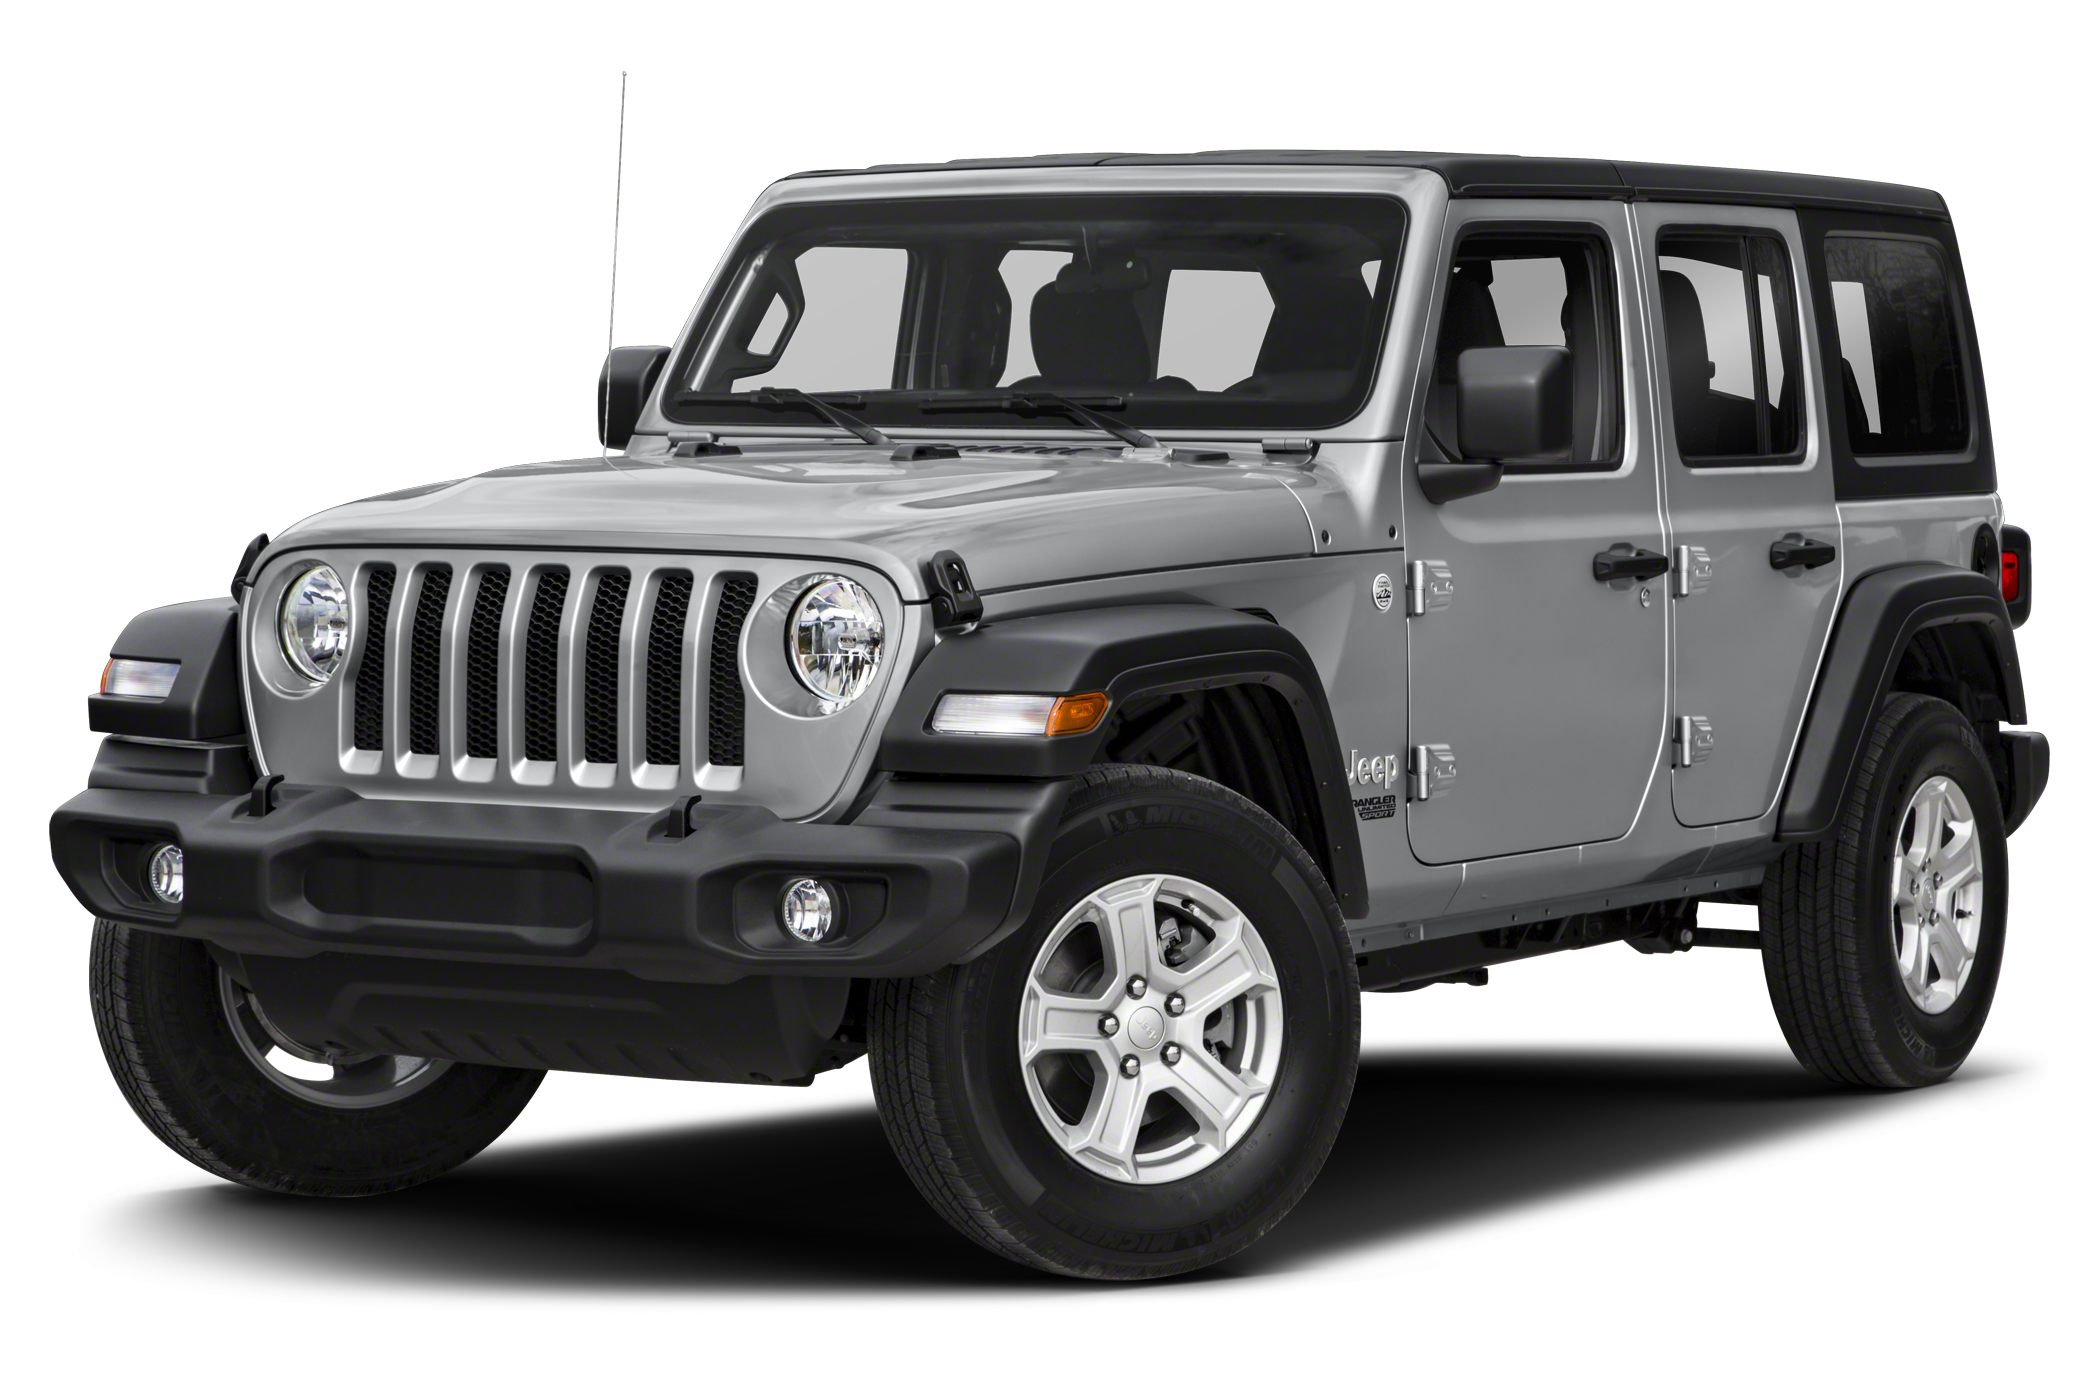 2018 jeep wrangler unlimited rubicon for sale vin 1c4hjxfg6jw